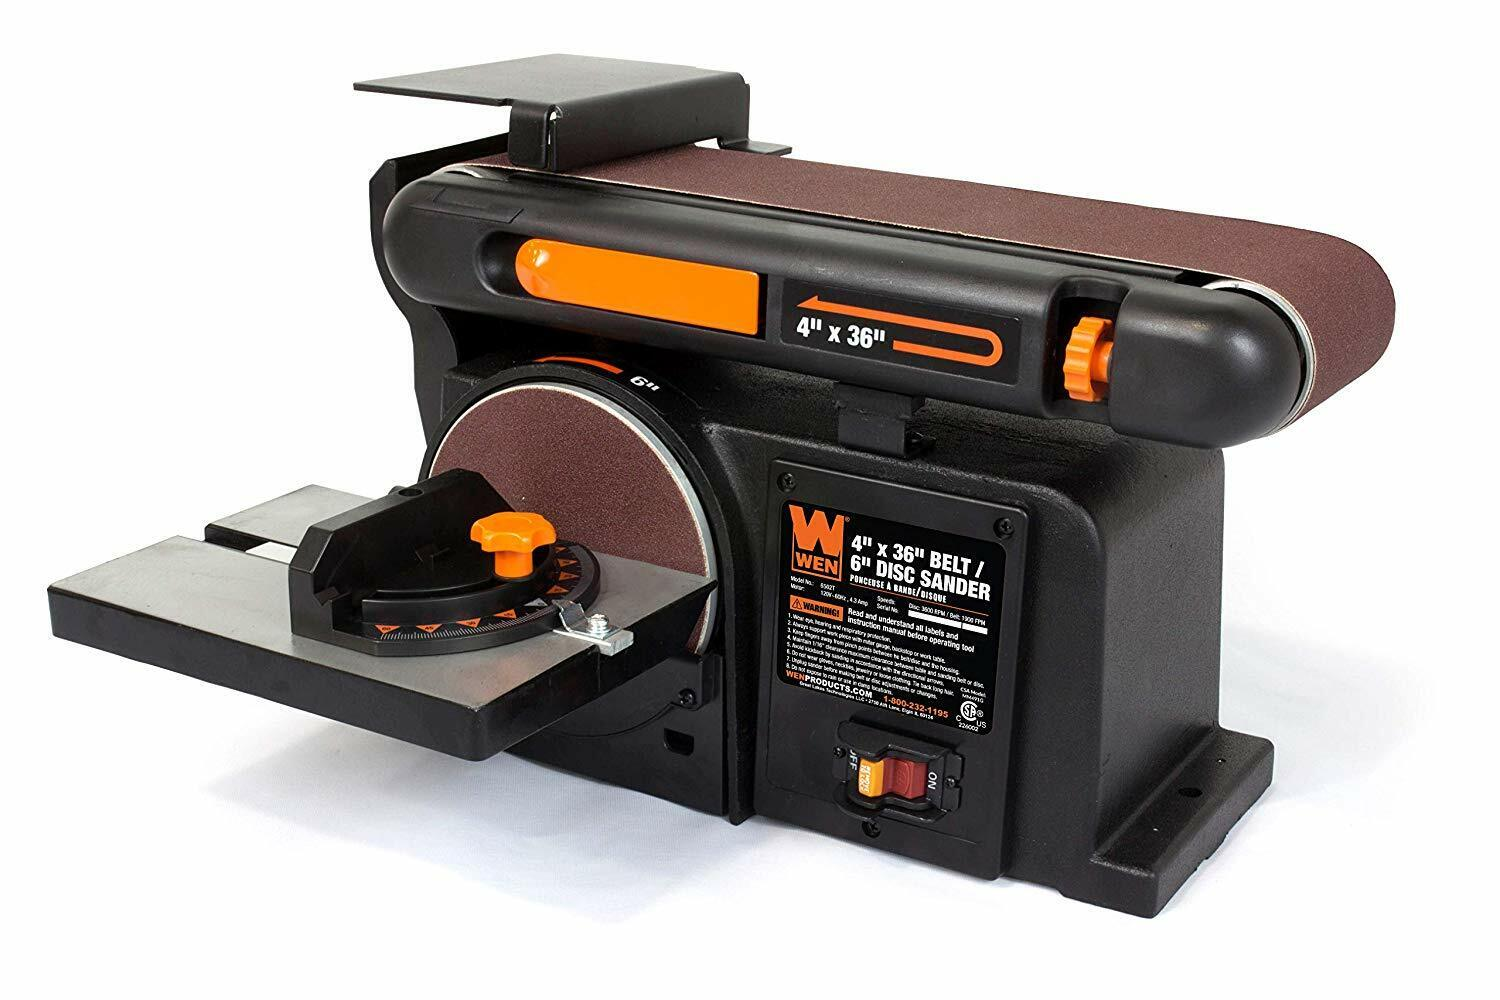 WEN 6502T 4.3-Amp 4 x 36 in. Belt and 6 in. Disc Sander with